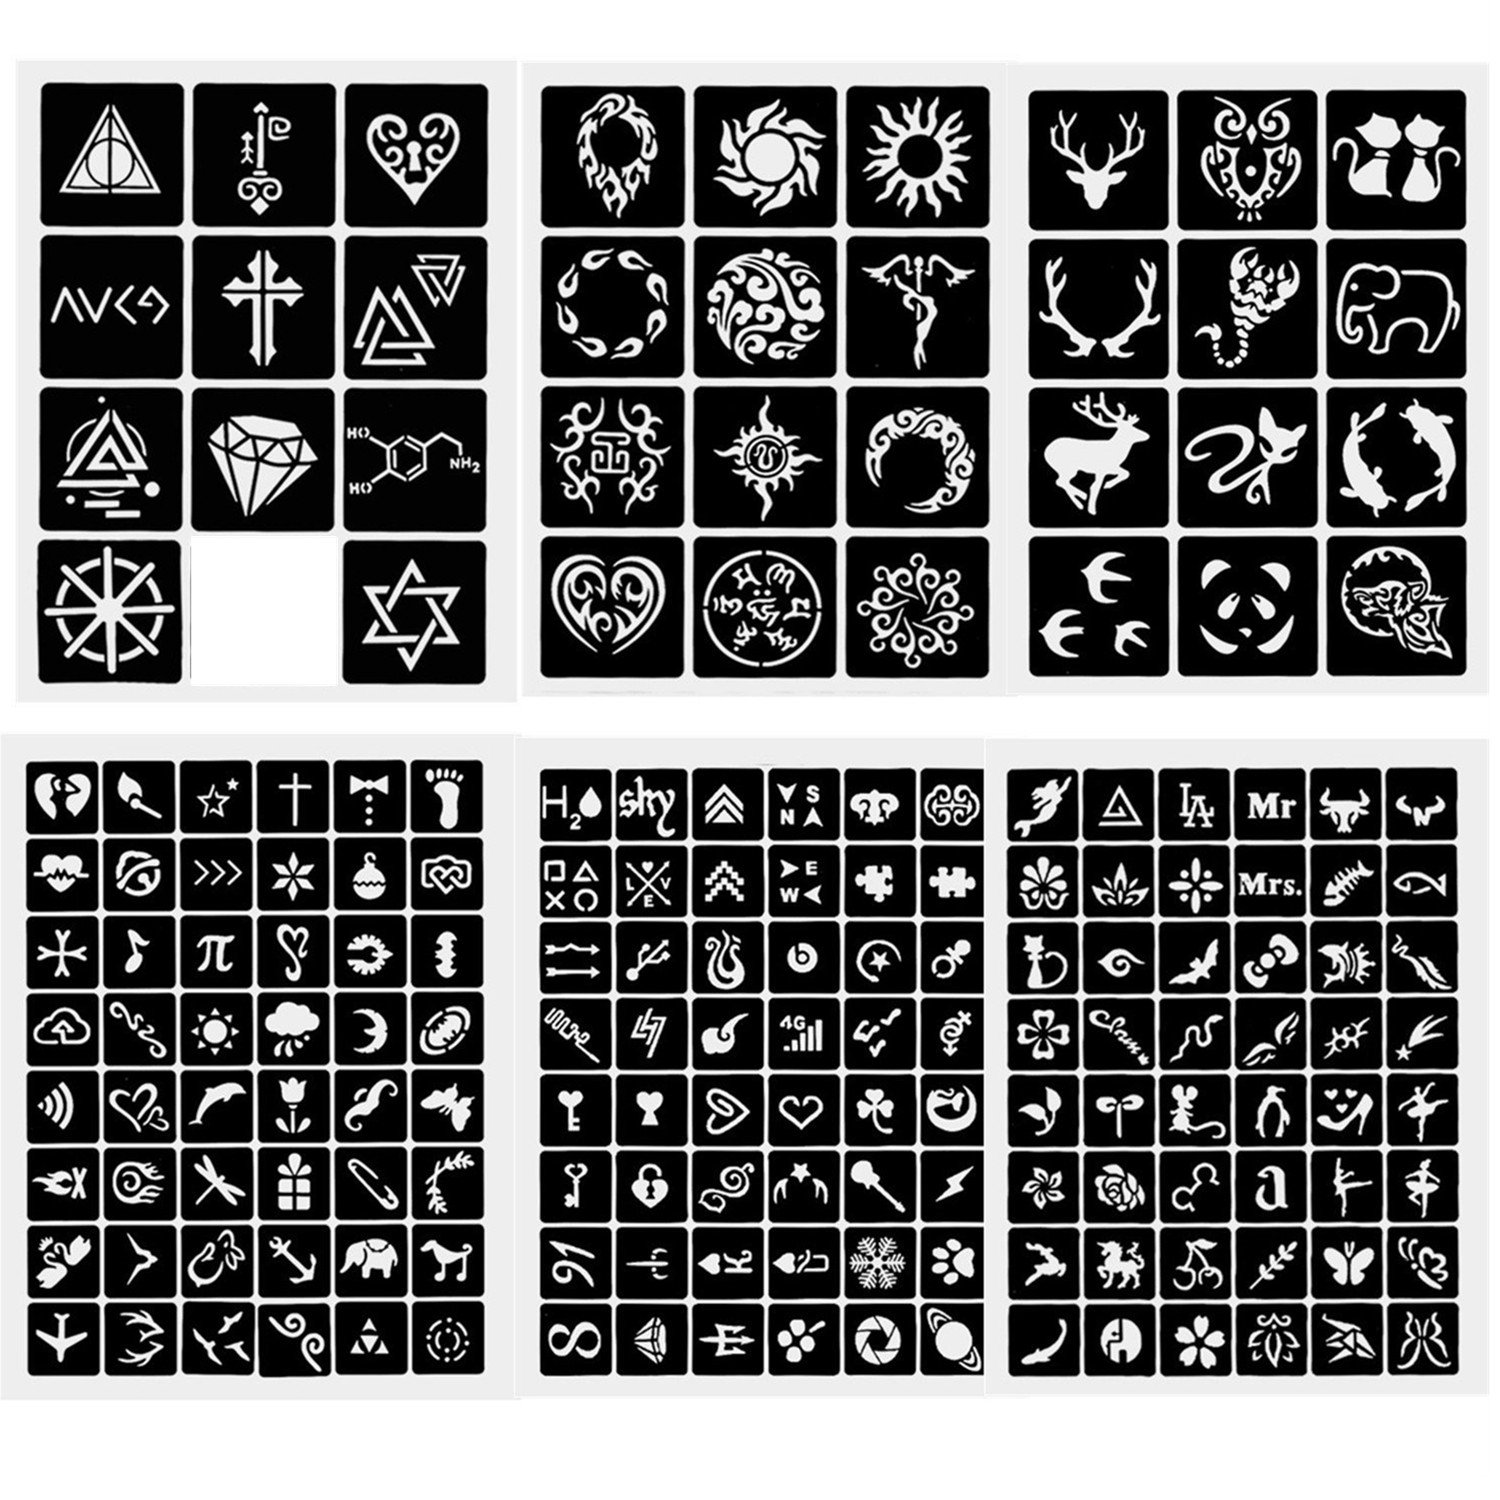 6 Sheets Crafts Adhesive Stencils Template for Henna Tattoo Body Art Painting Glitter Tattoos (style 1)